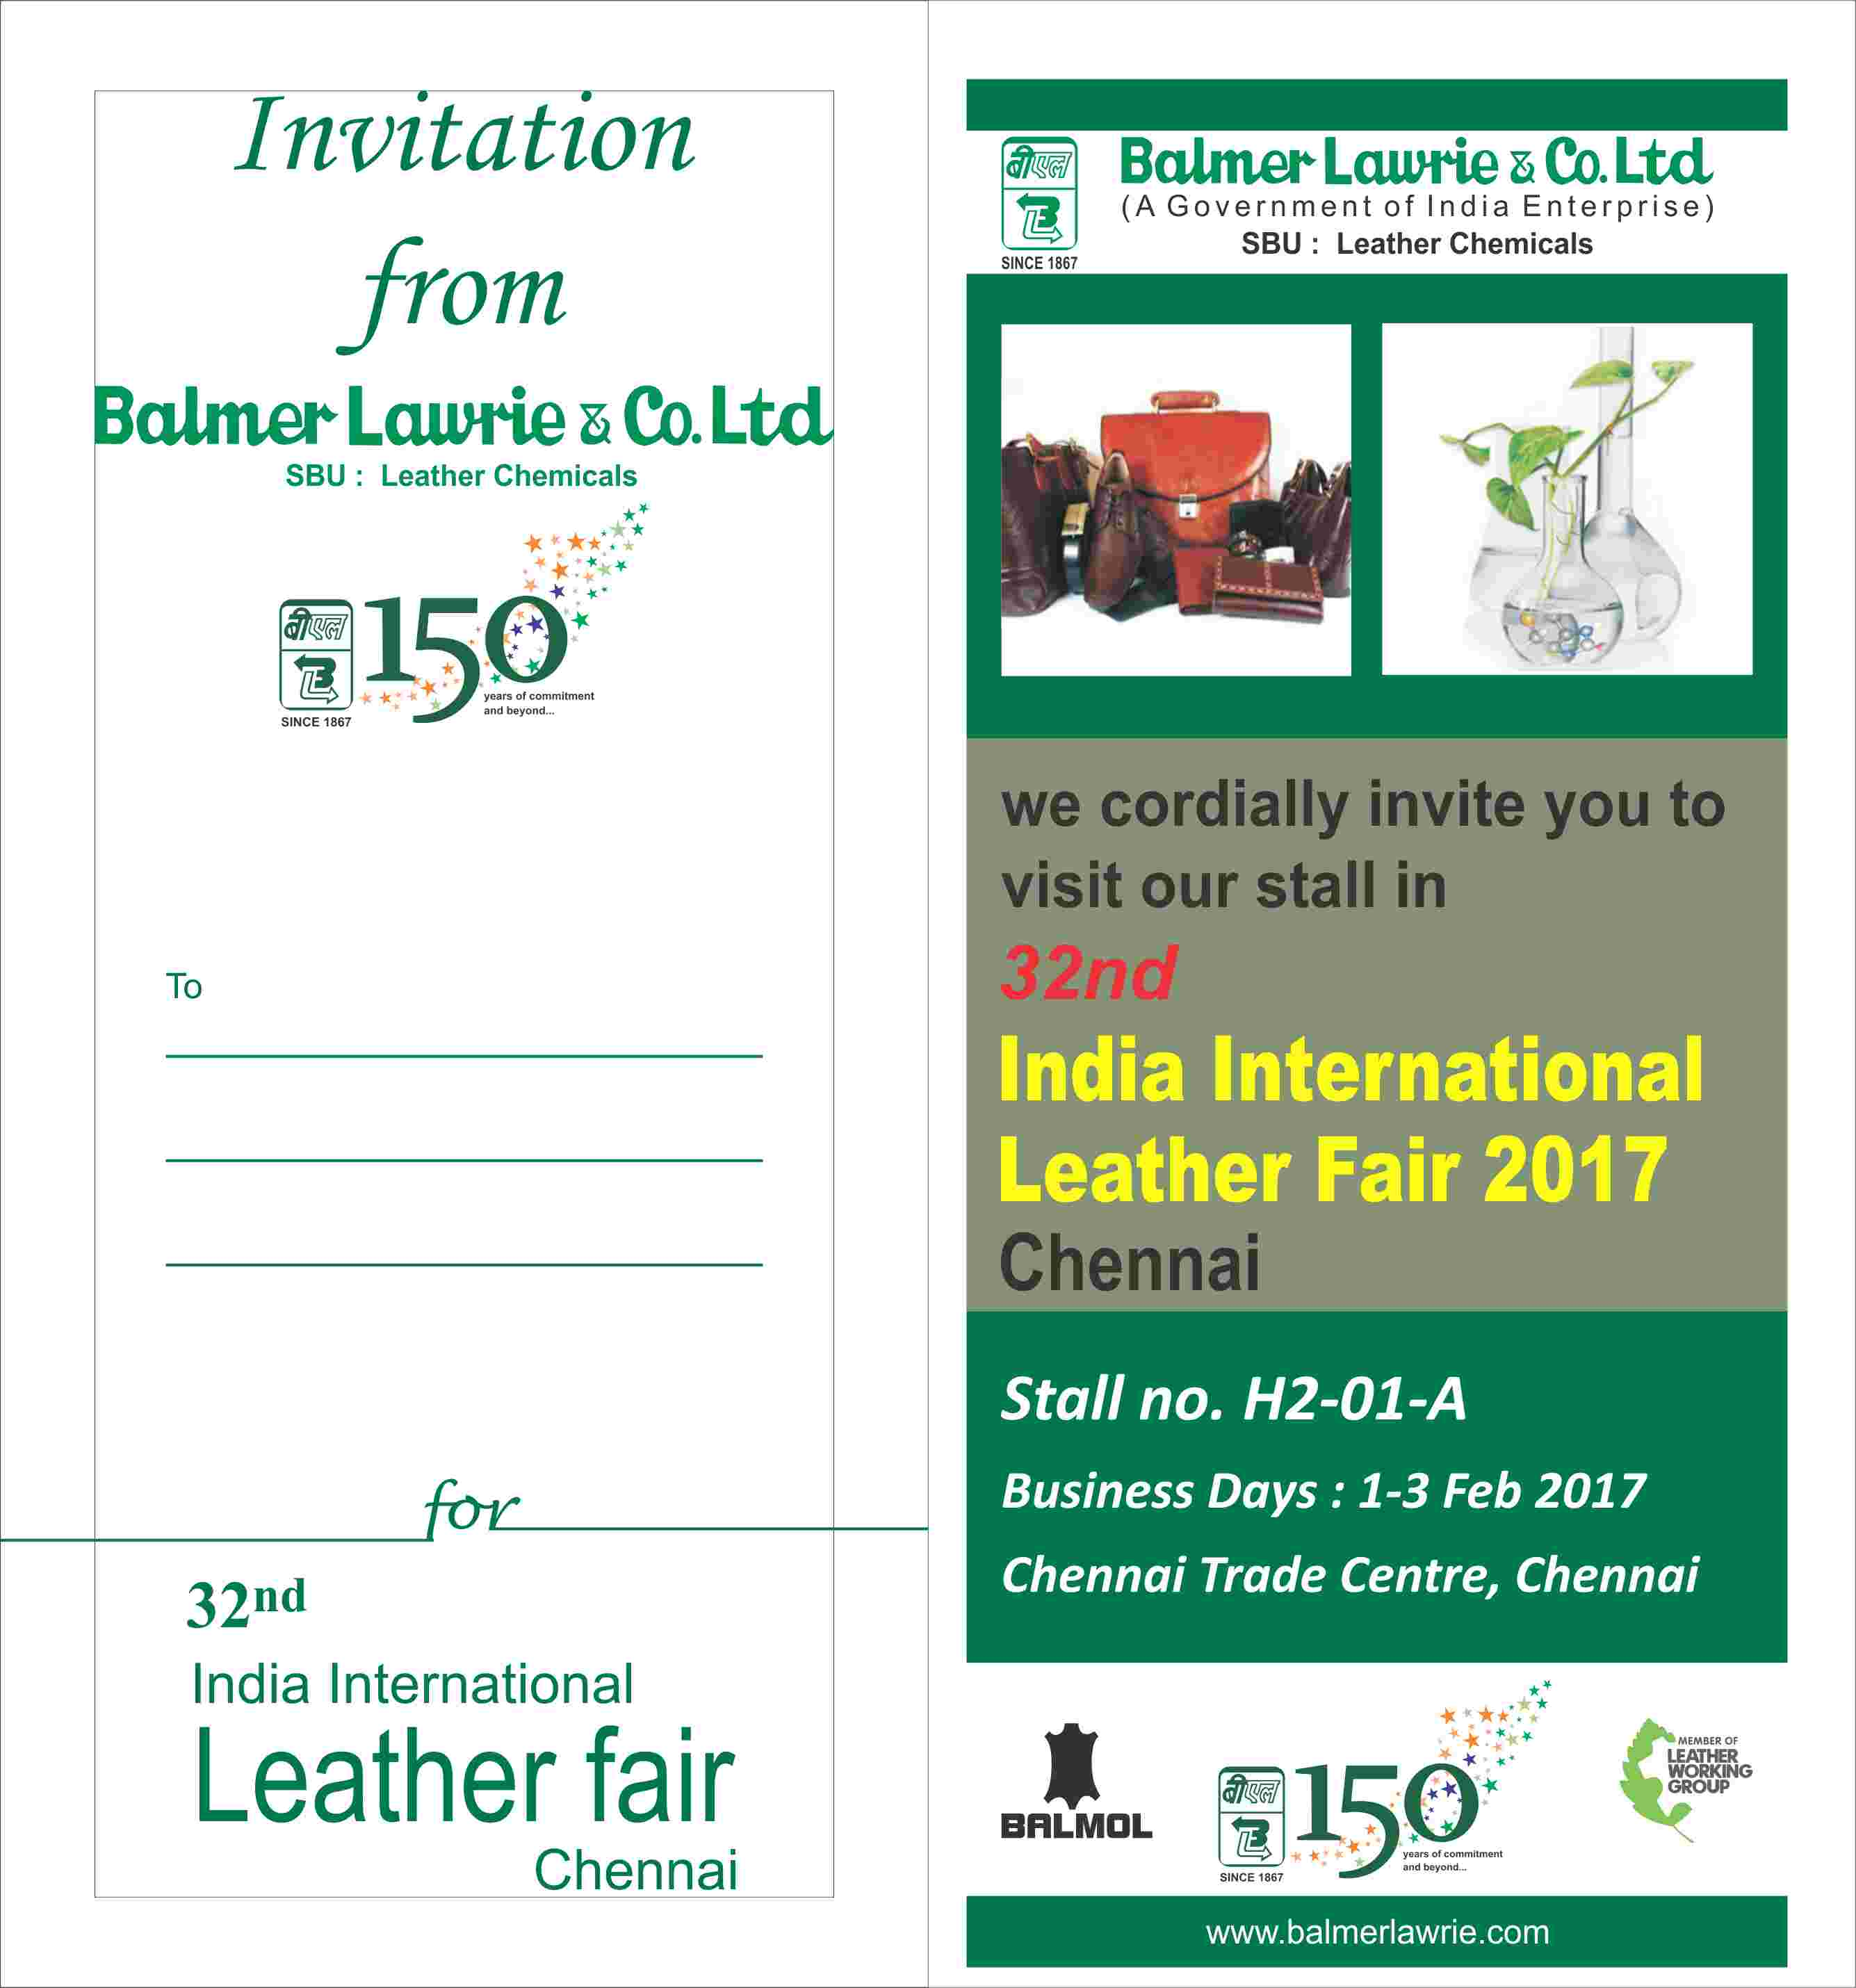 BL invites for India International Leather Fair 2017